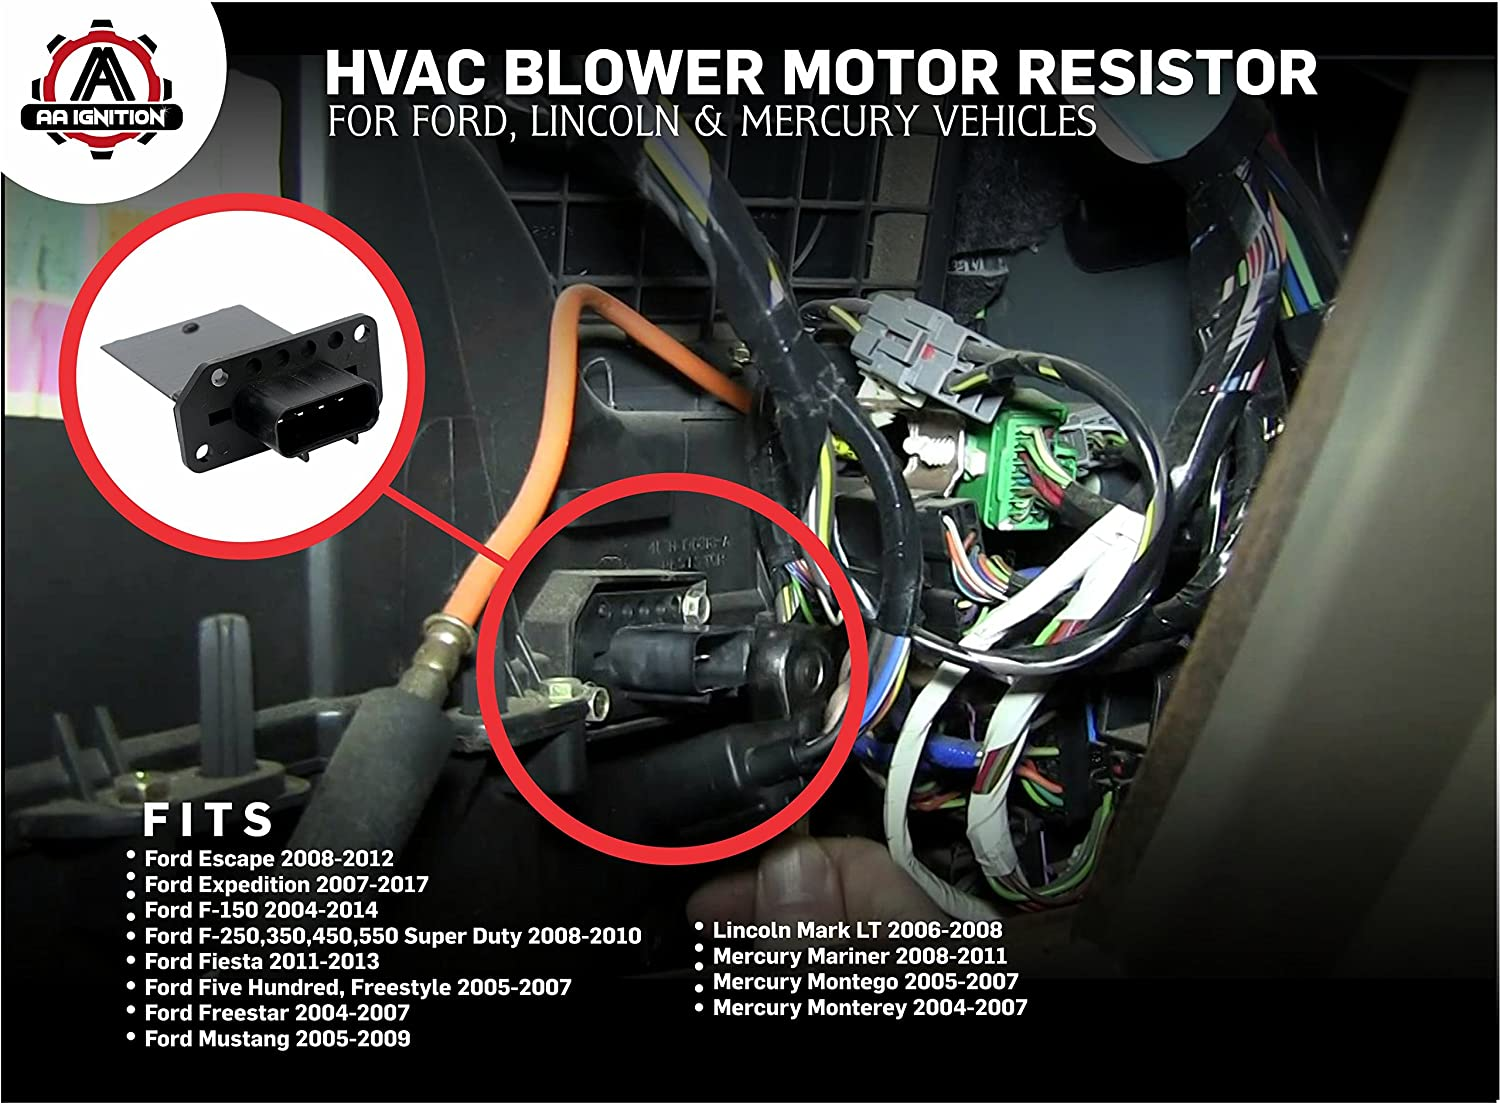 Ford Escape Blower Motor Resistor Location Wiring Hvac Fits Expedition Super Duty Mustang Lincoln Mark Mercury Mariner Replaces